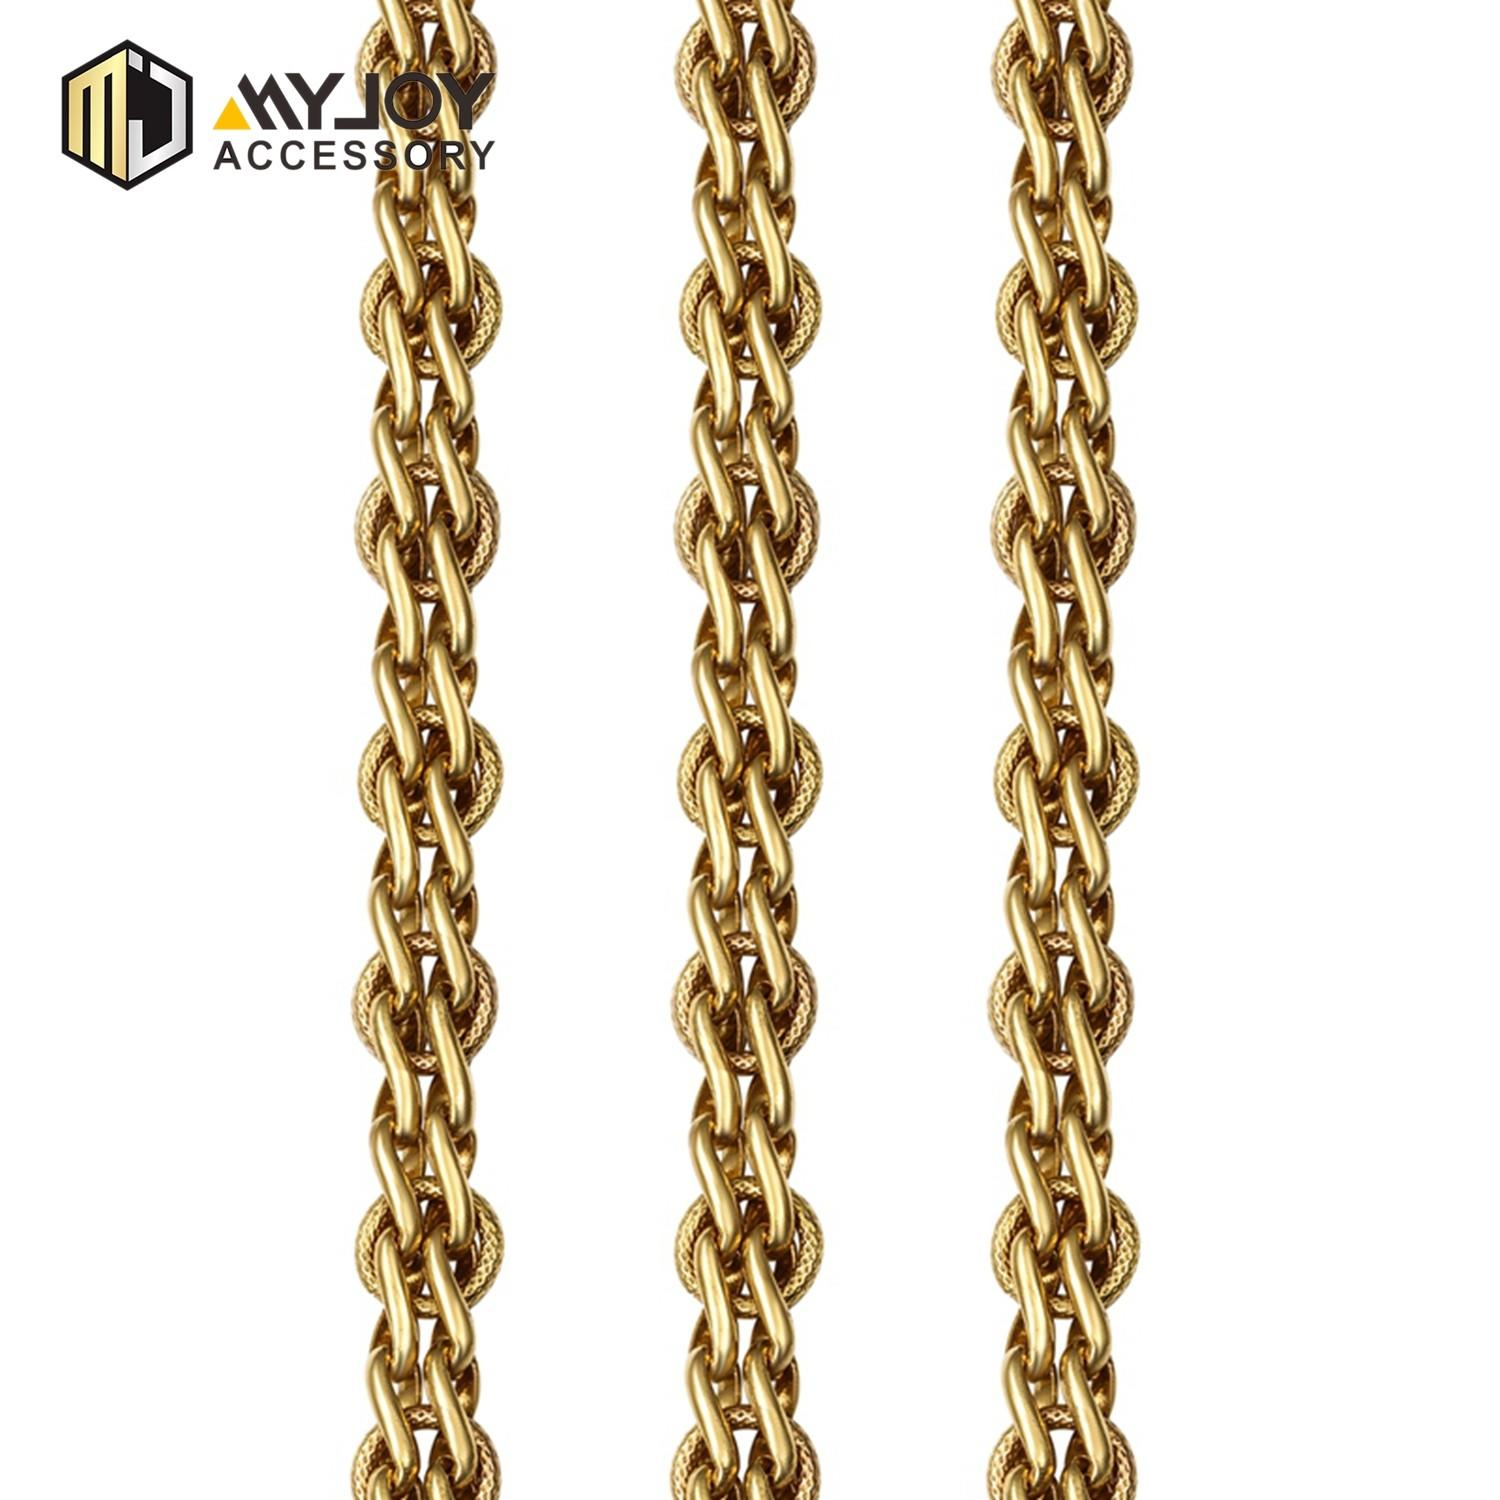 MYJOY zinc chain strap company for bags-2